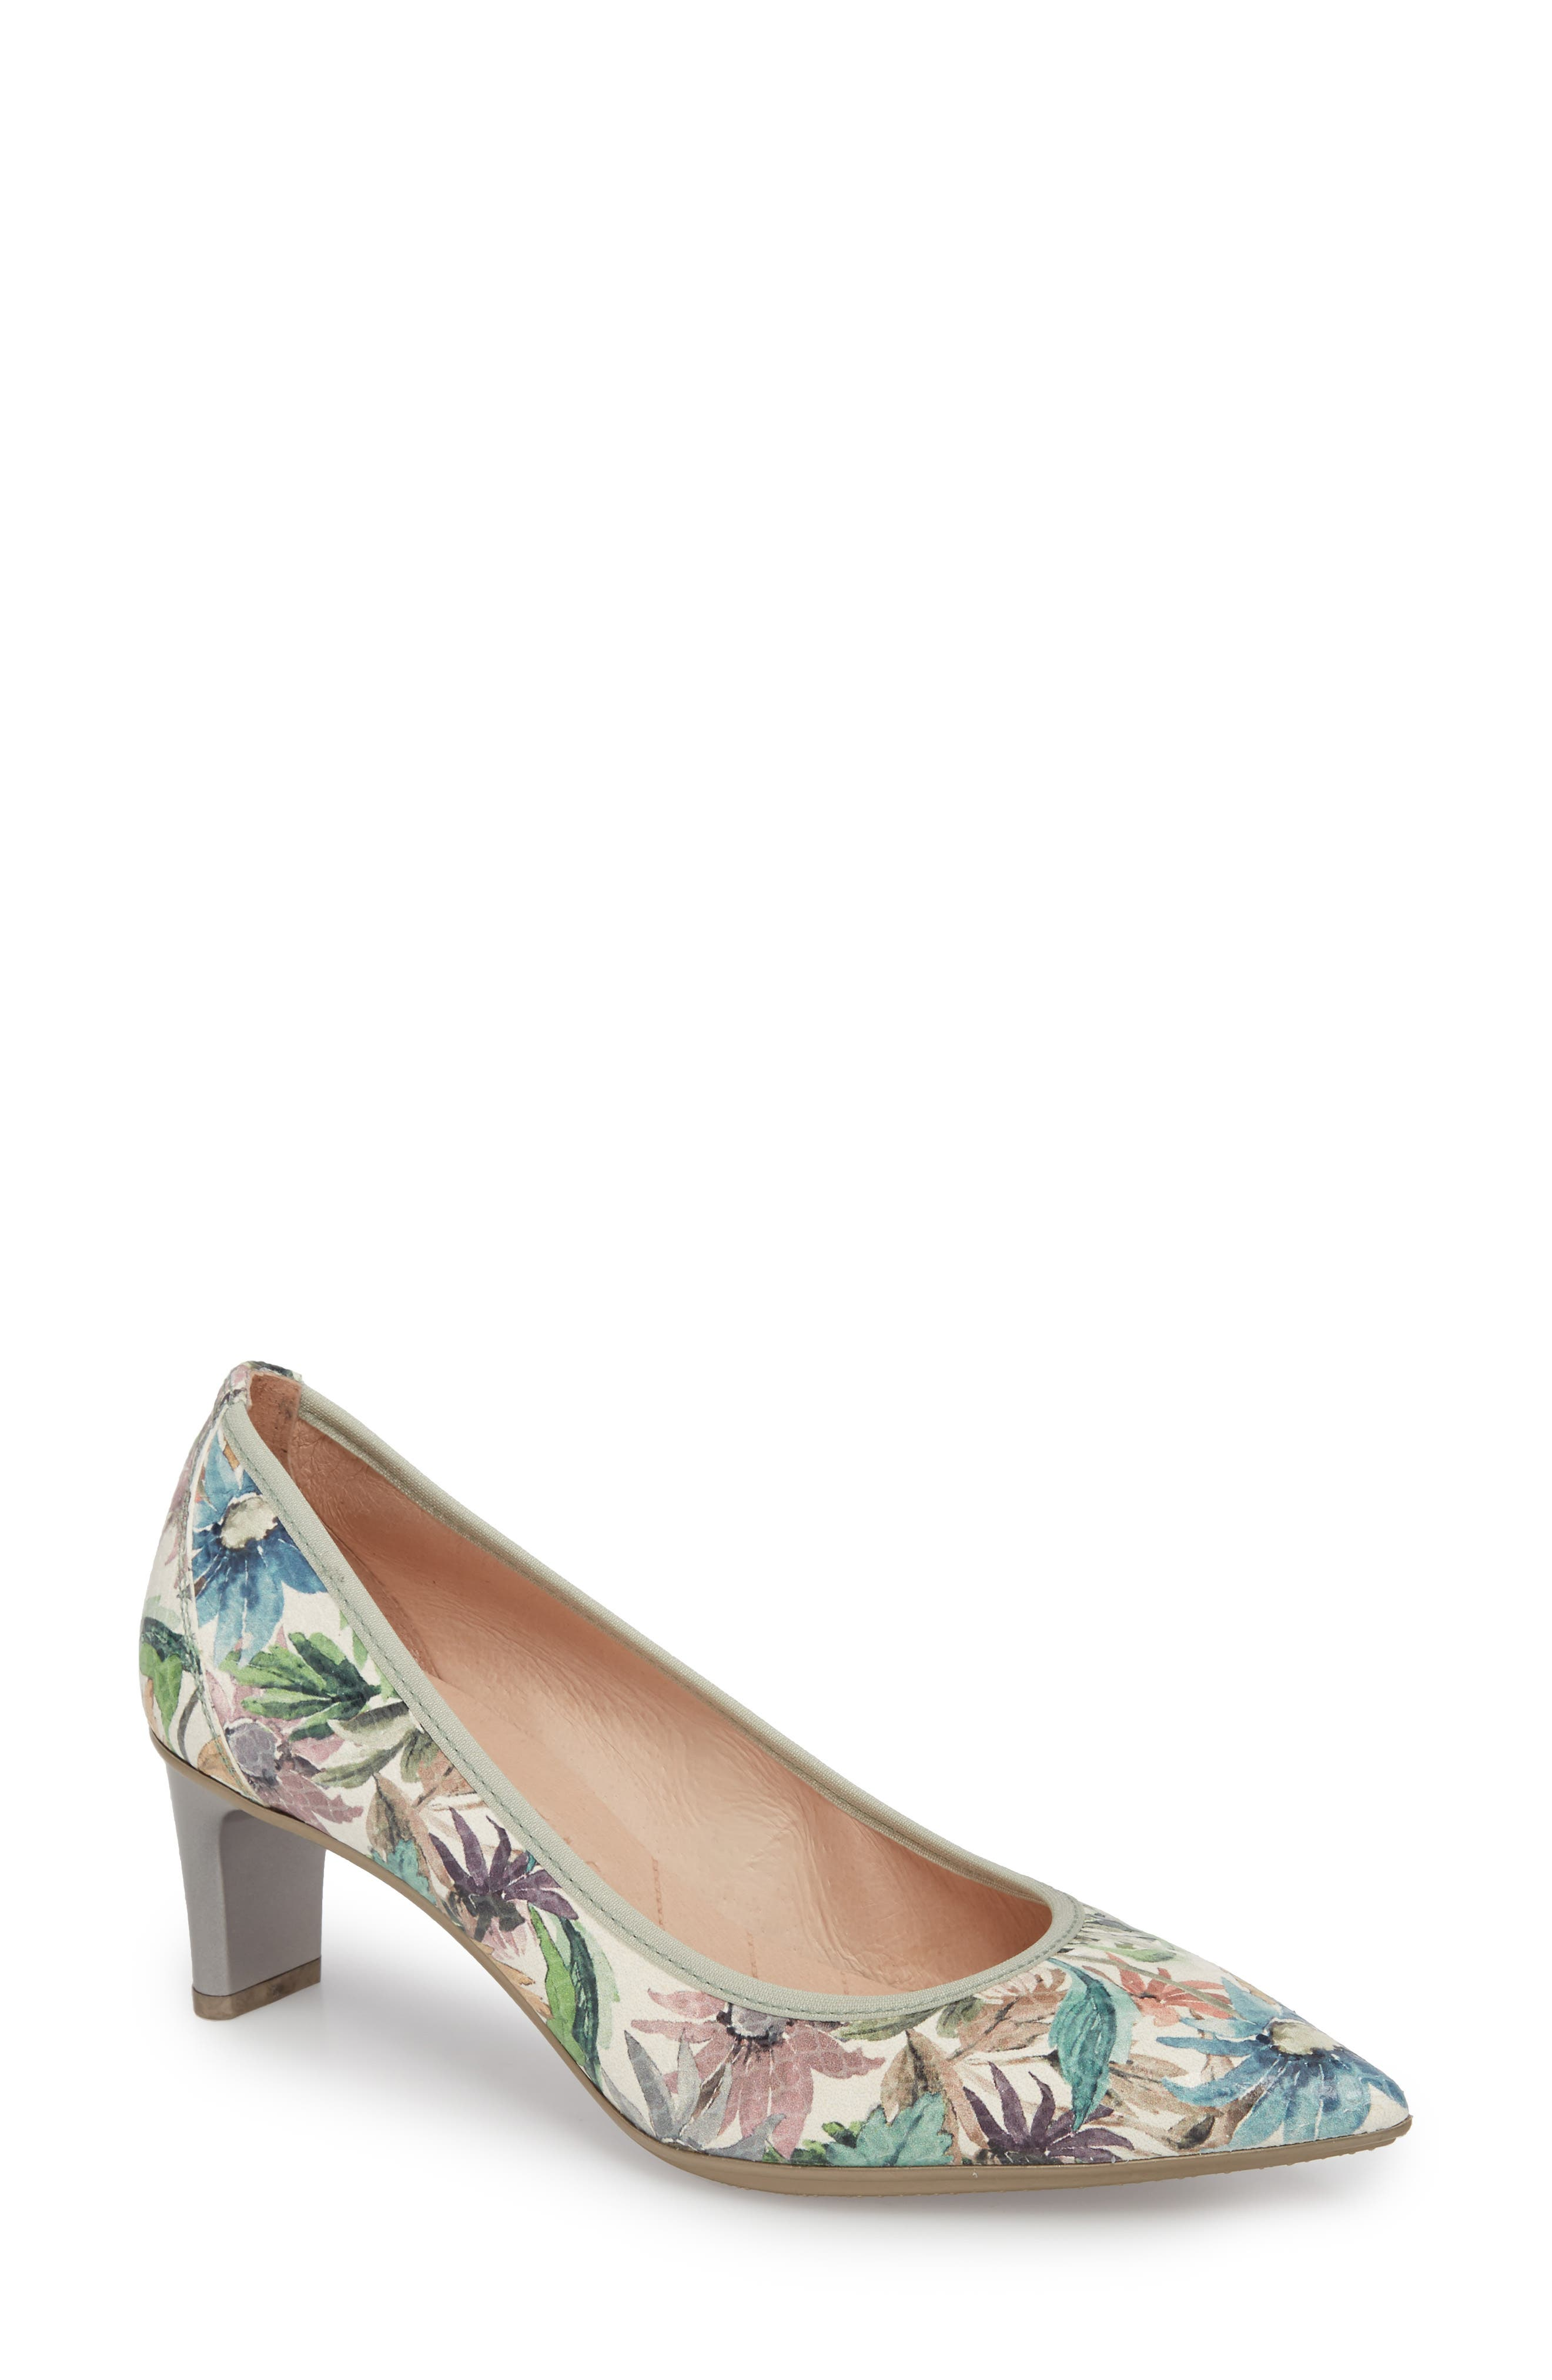 Melanie Pointy Toe Pump,                         Main,                         color, Blossom Leather